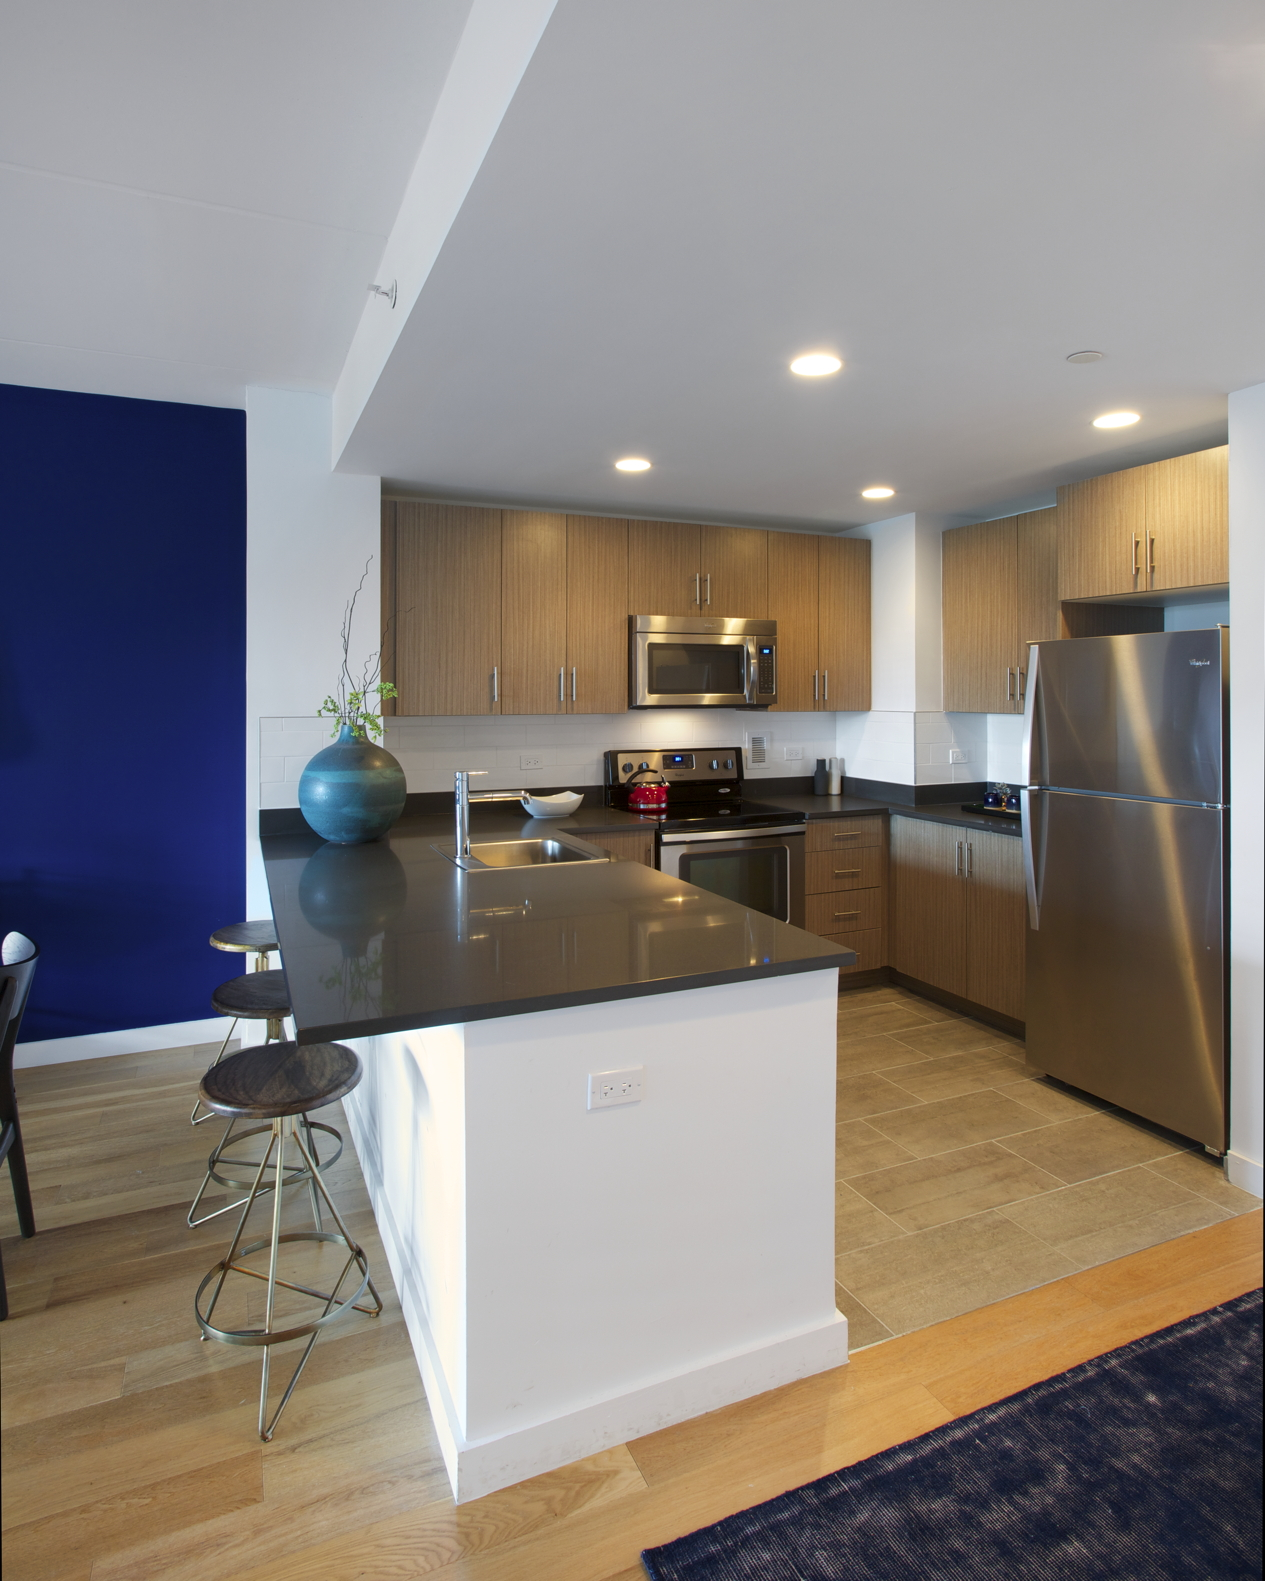 Typical apartment kitchen - Photo courtesy of client